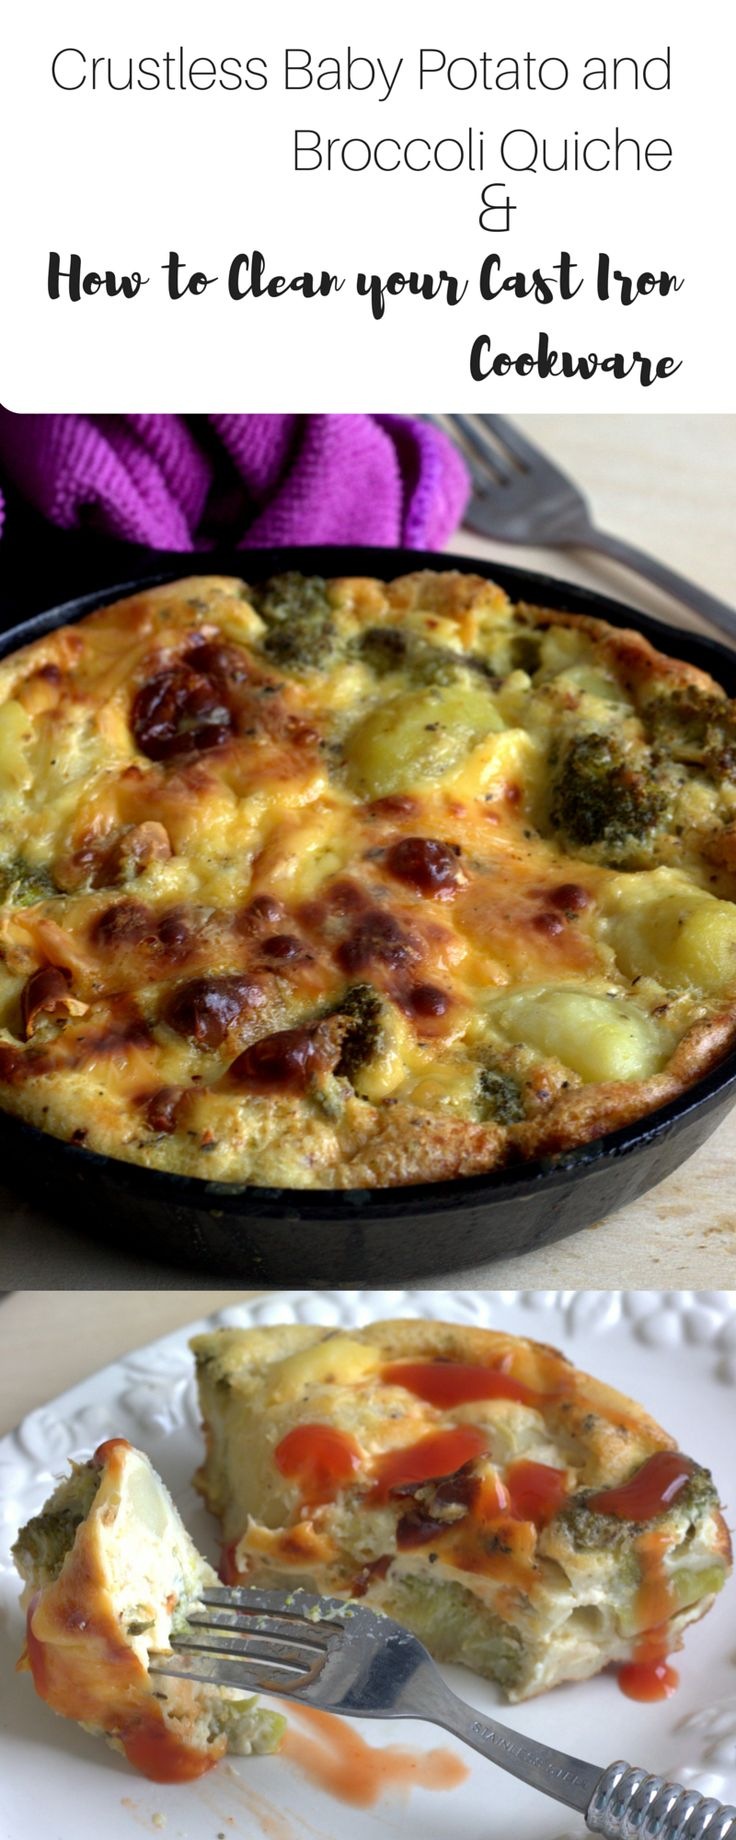 Crustless Quiche made with baby potatoes and broccoli in a creamy, garlicky…